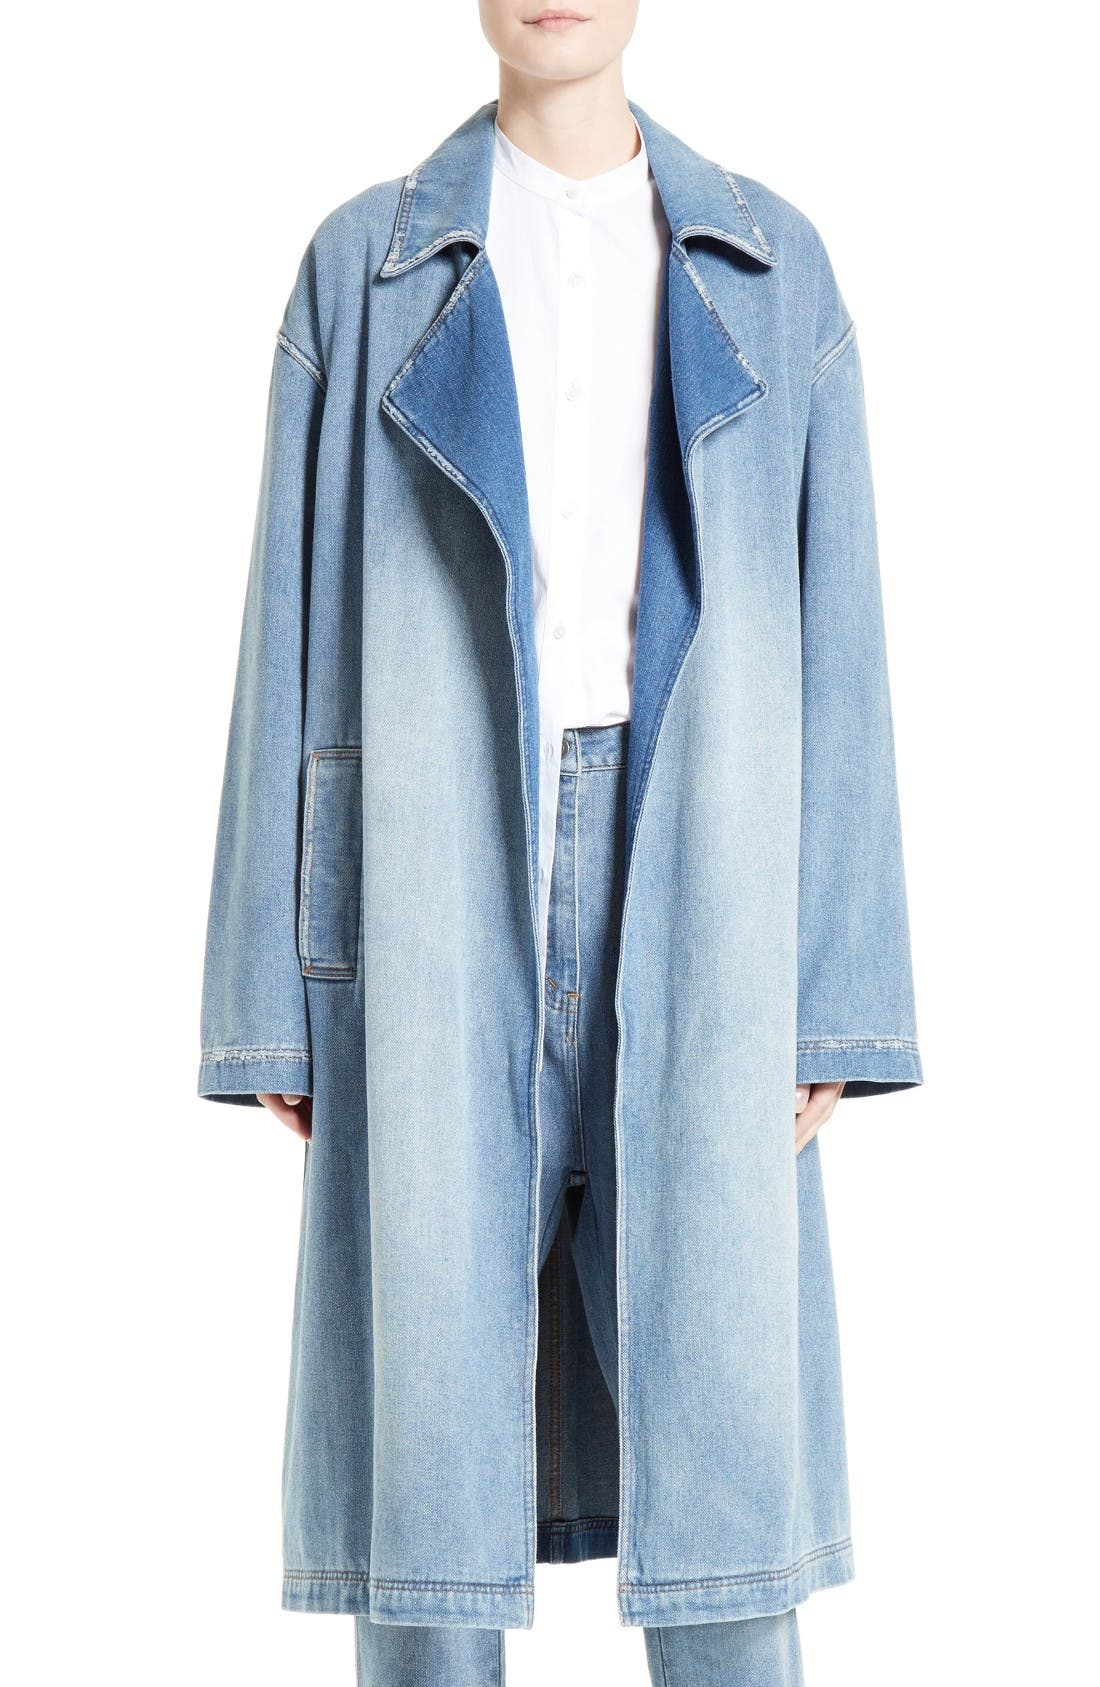 Alternate Image 1 Selected - Robert Rodriguez Denim Trench Coat